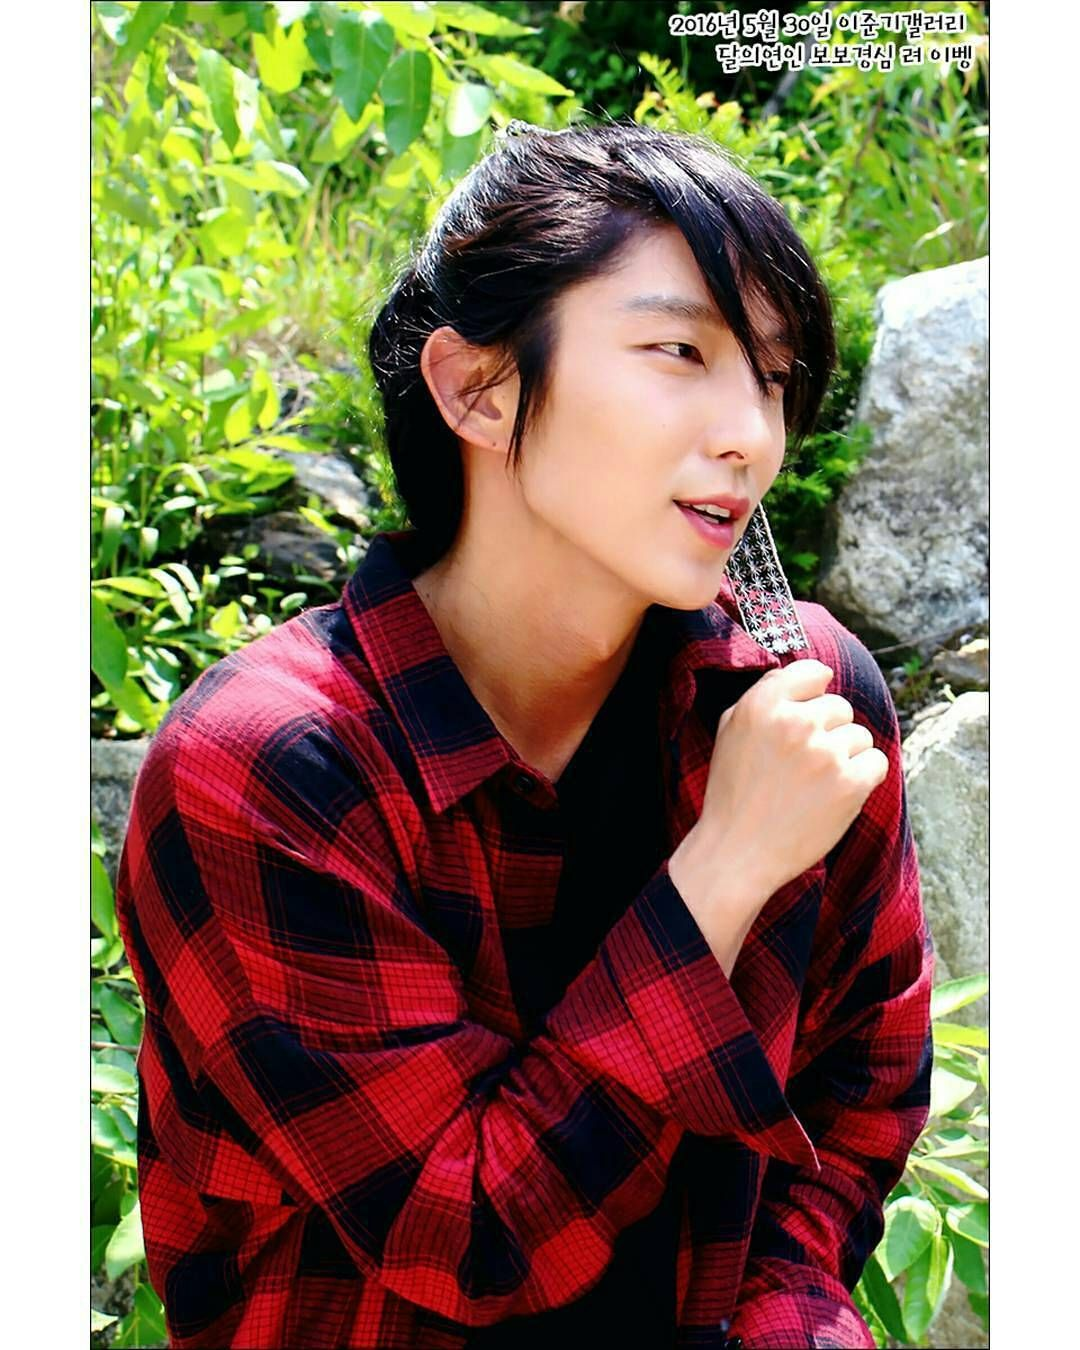 Lee Joon Gi More